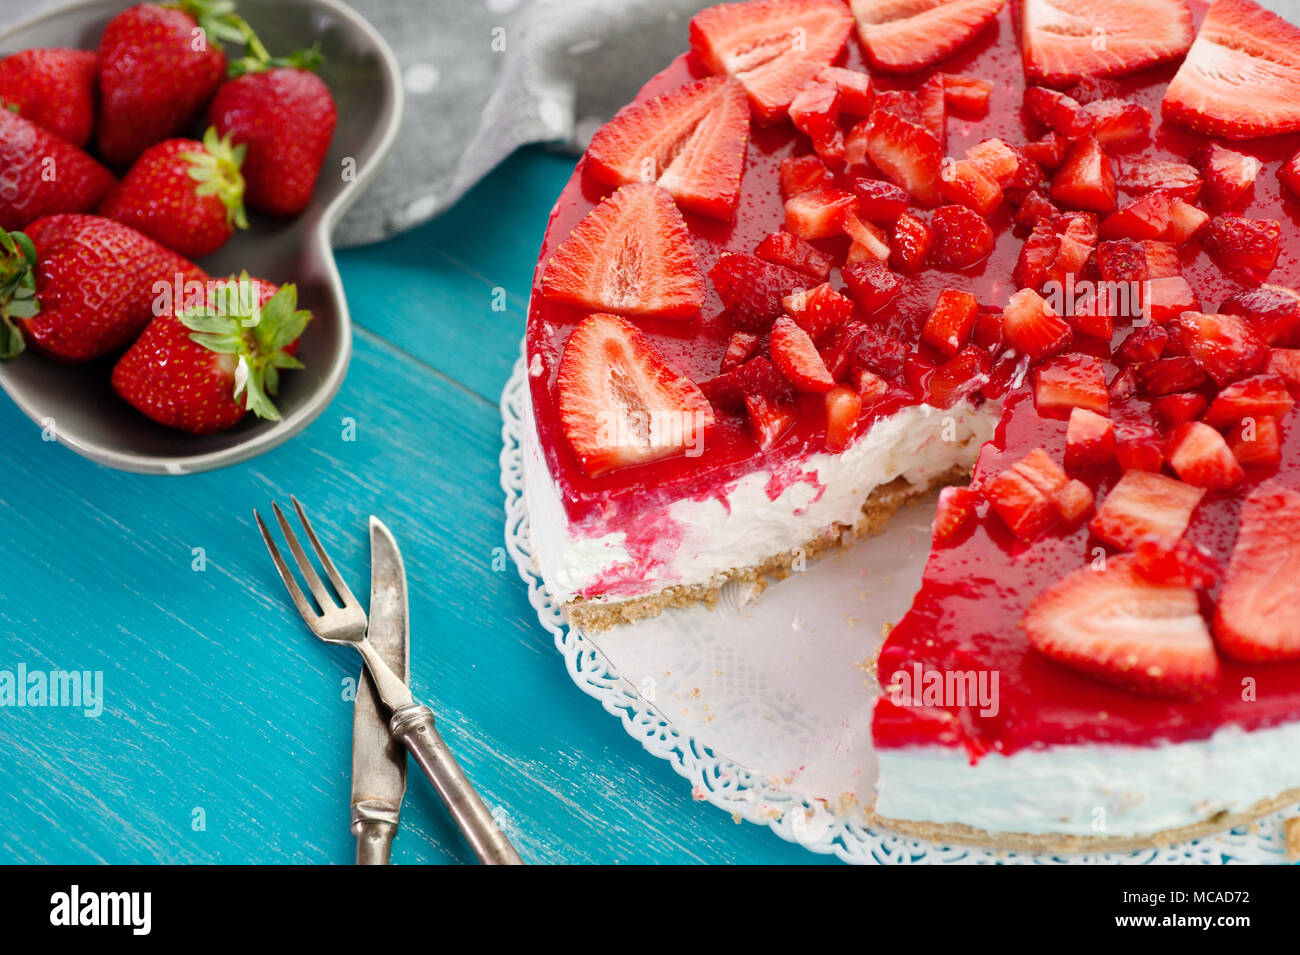 Homemade creamy dessert cake pie of red strawberry fresh fruit on blue wooden background with knife and fork - Stock Image